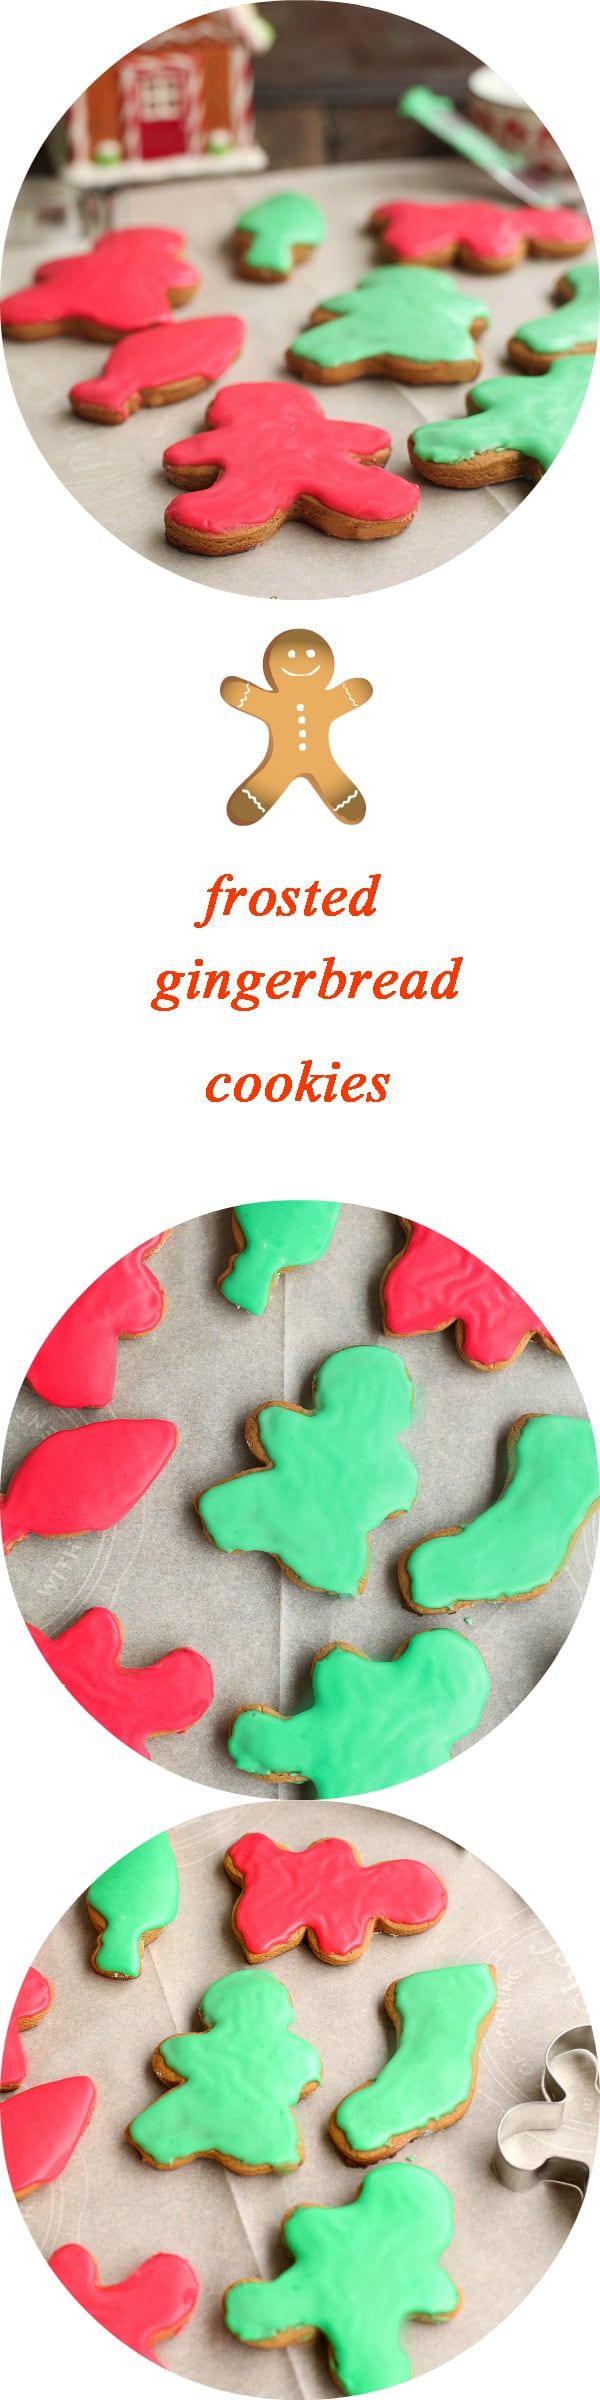 recipe for gingerbread cookies